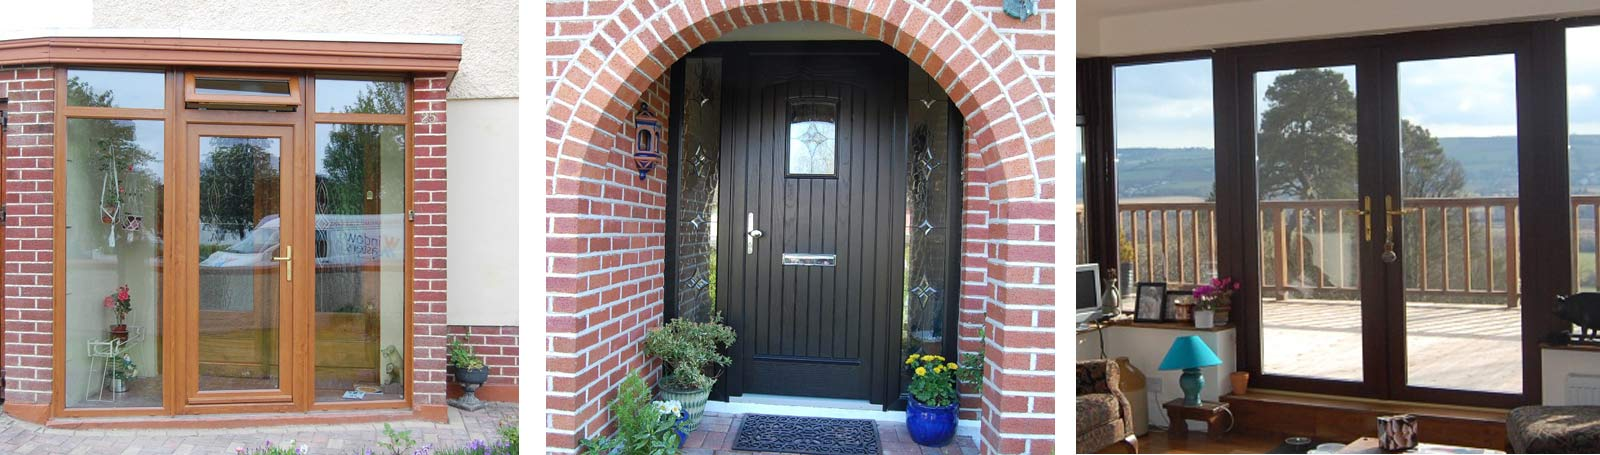 Doors – front doors, French doors, sliding patio doors